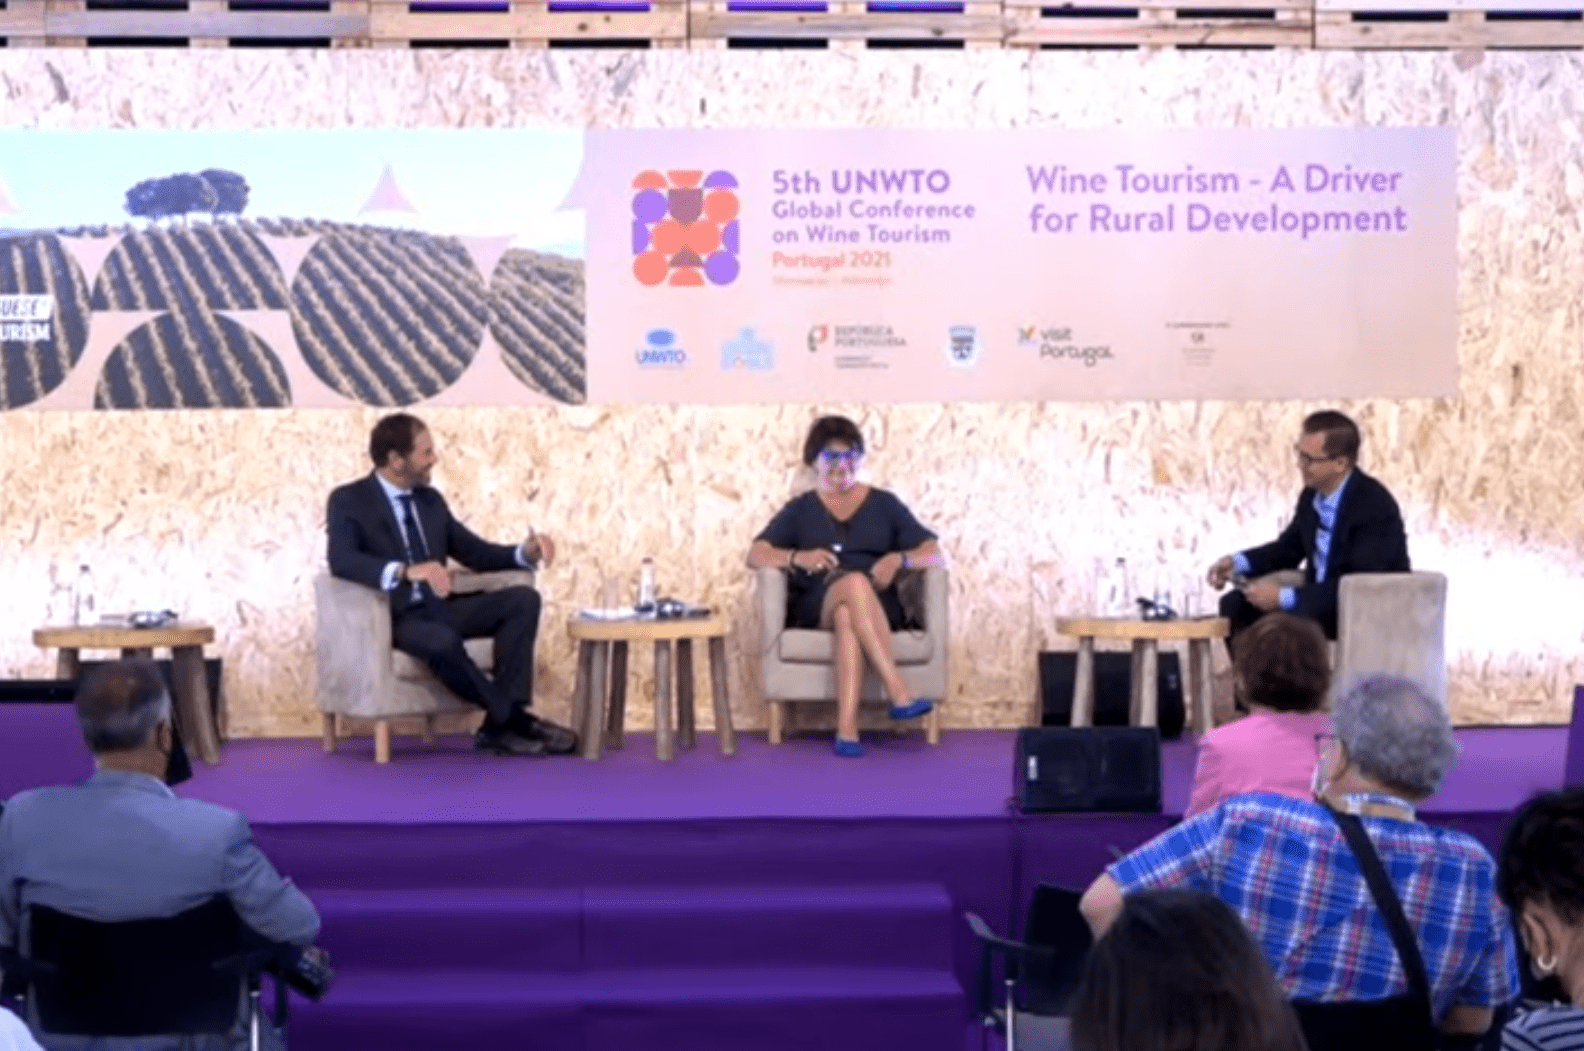 UNWTO Global Conference on Wine Tourism: 1st day overview